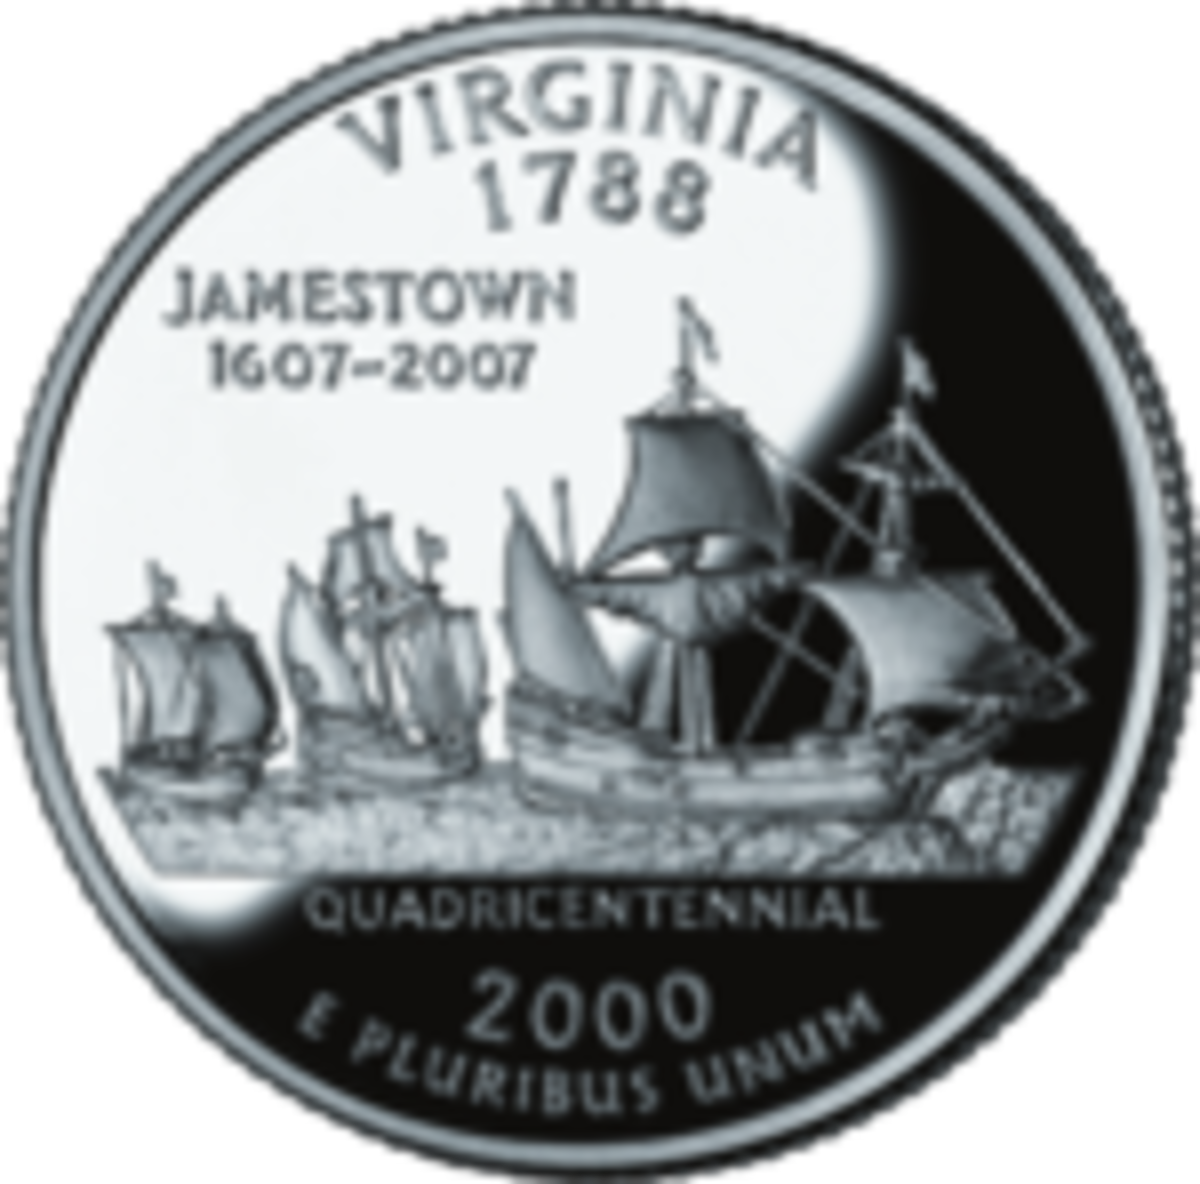 State Quarters List - Common and Uncommon Mintages